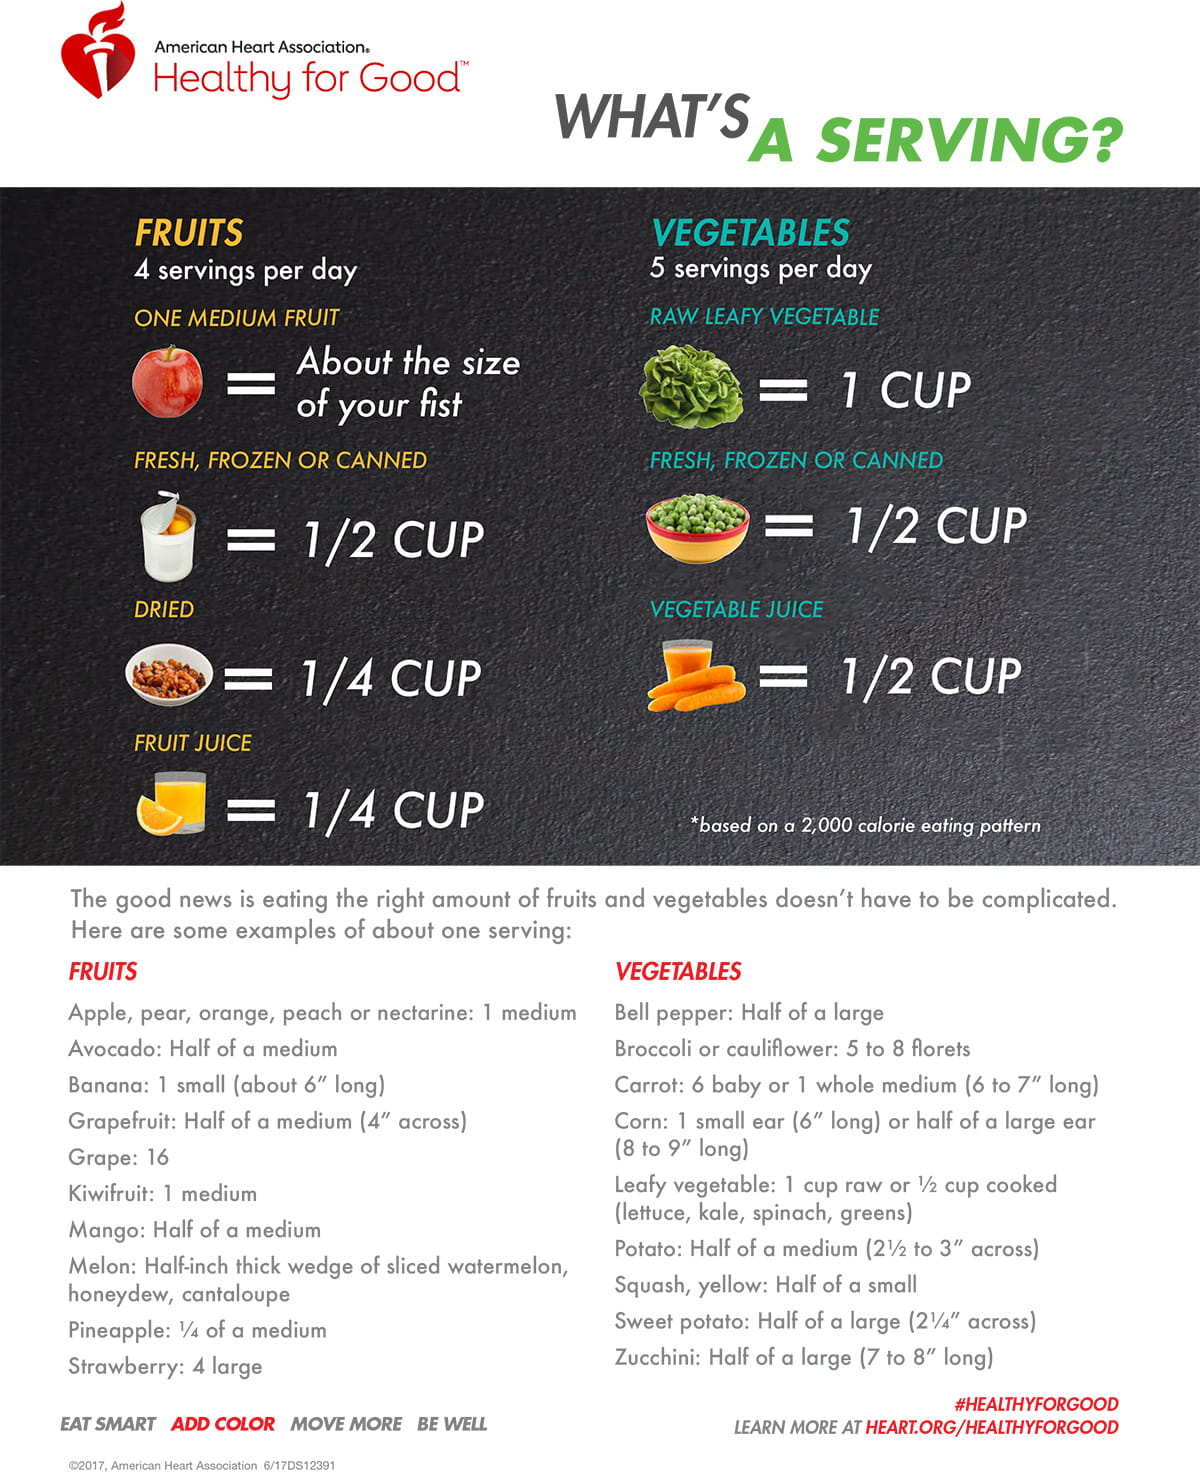 How much does 2 cups of vegetables weigh